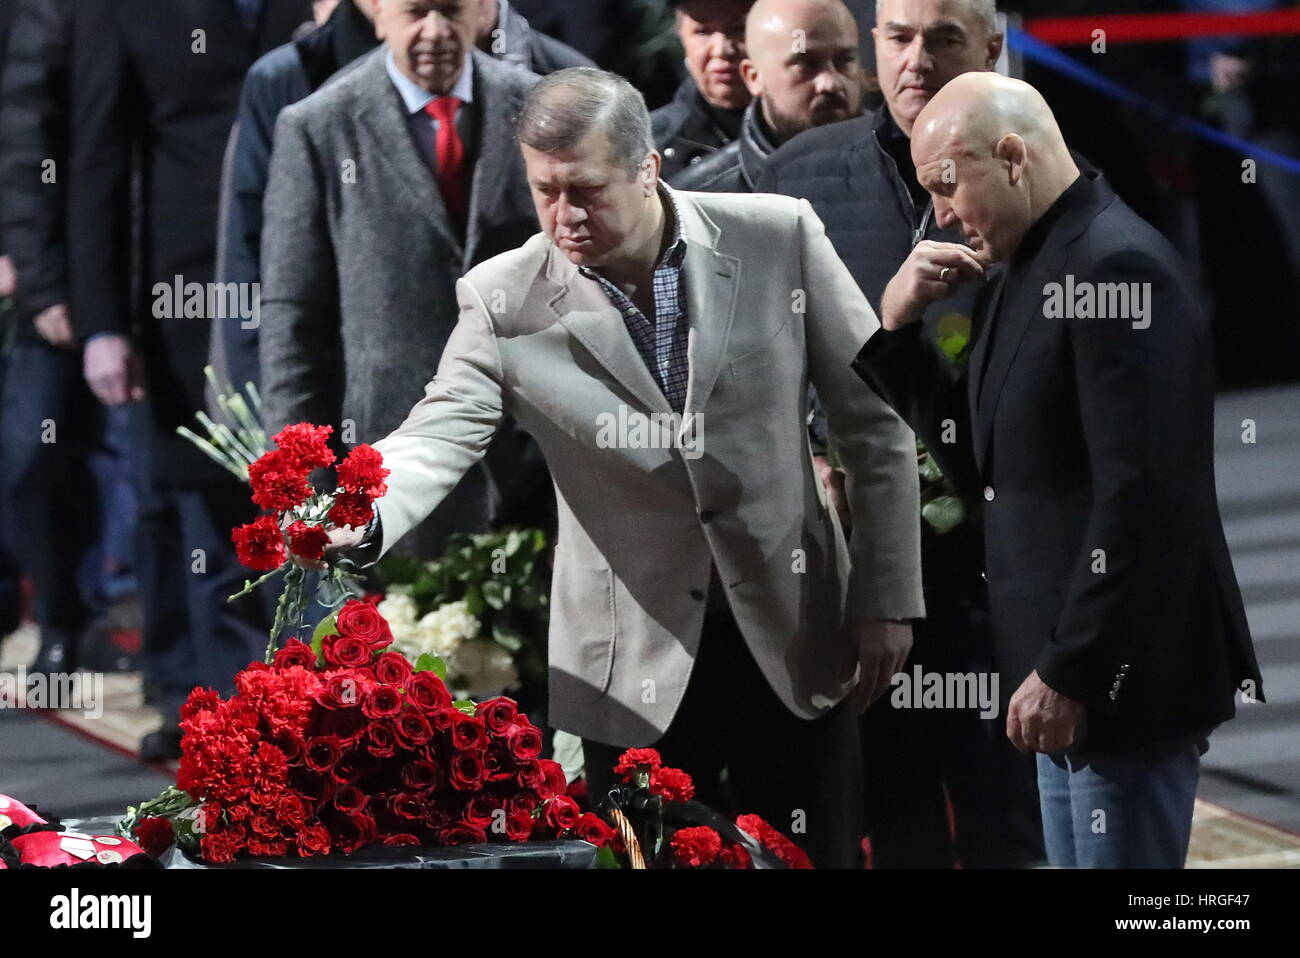 Moscow, Russia. 2nd Mar, 2017. Dzhambolat Tedeyev (L), head coach of the Russian national freestyle wrestling team, - Stock Image